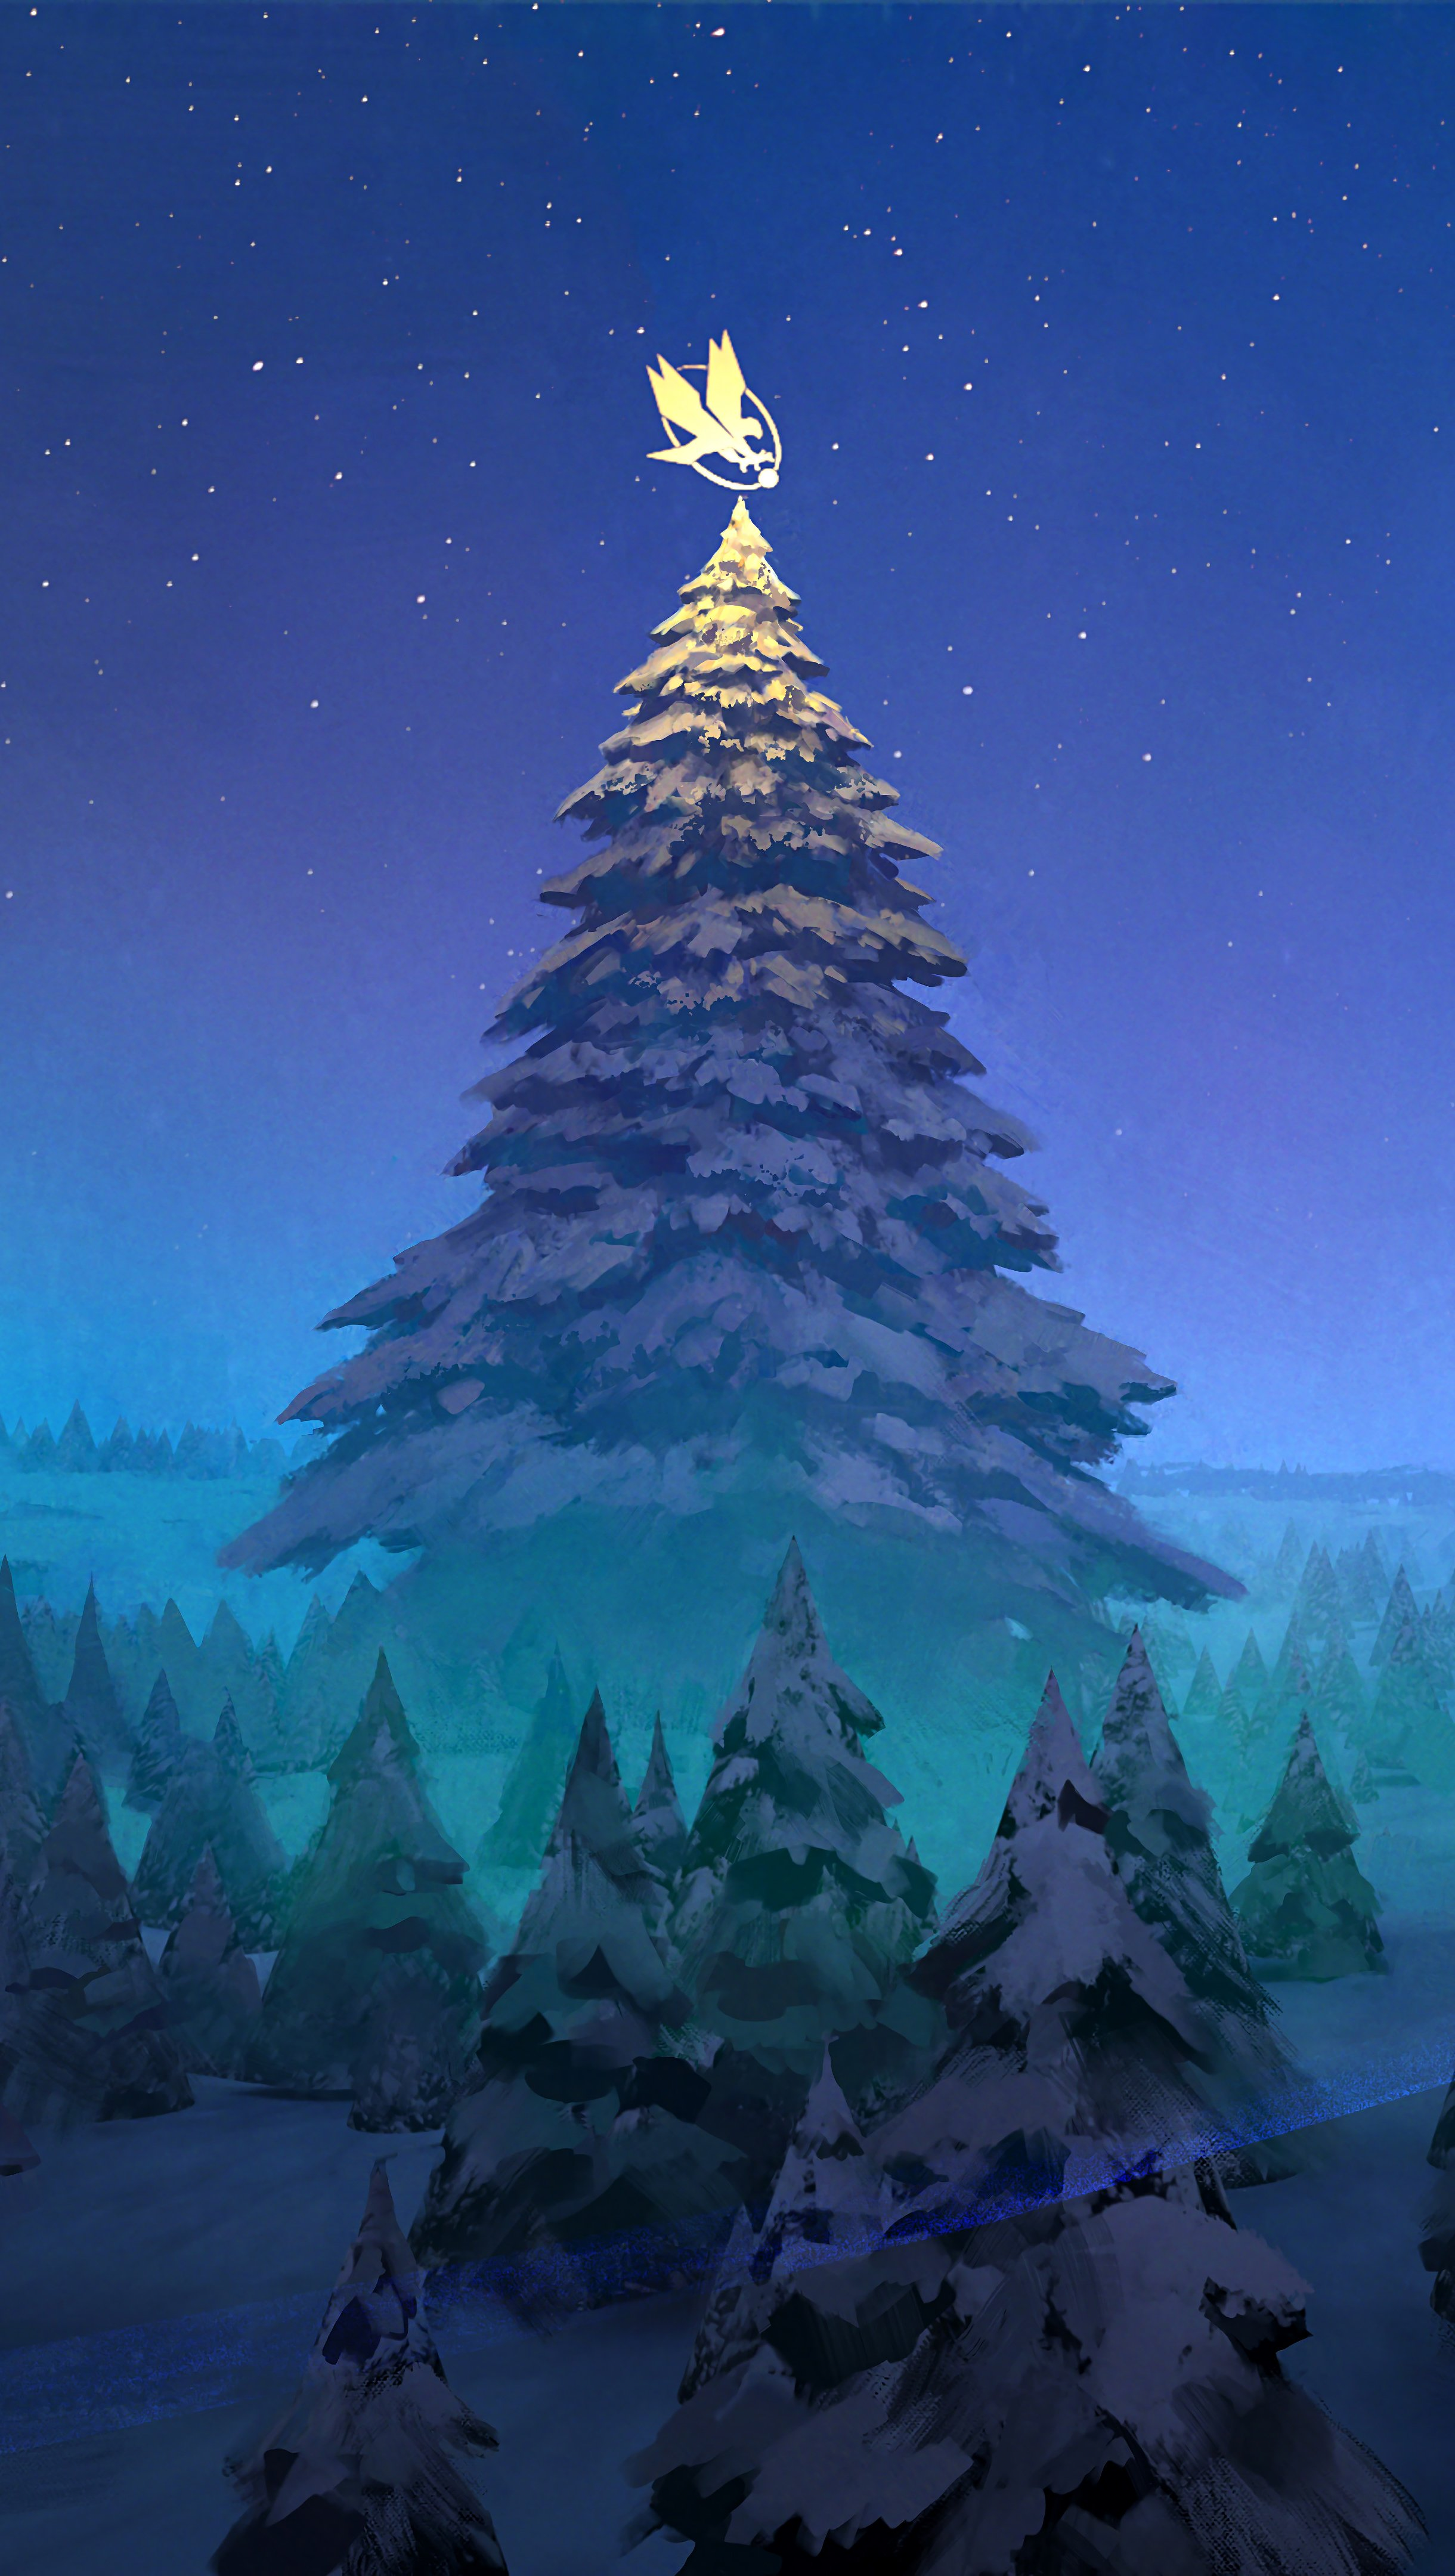 Wallpaper Christmas tree with Santa Claus sleigh flying Vertical